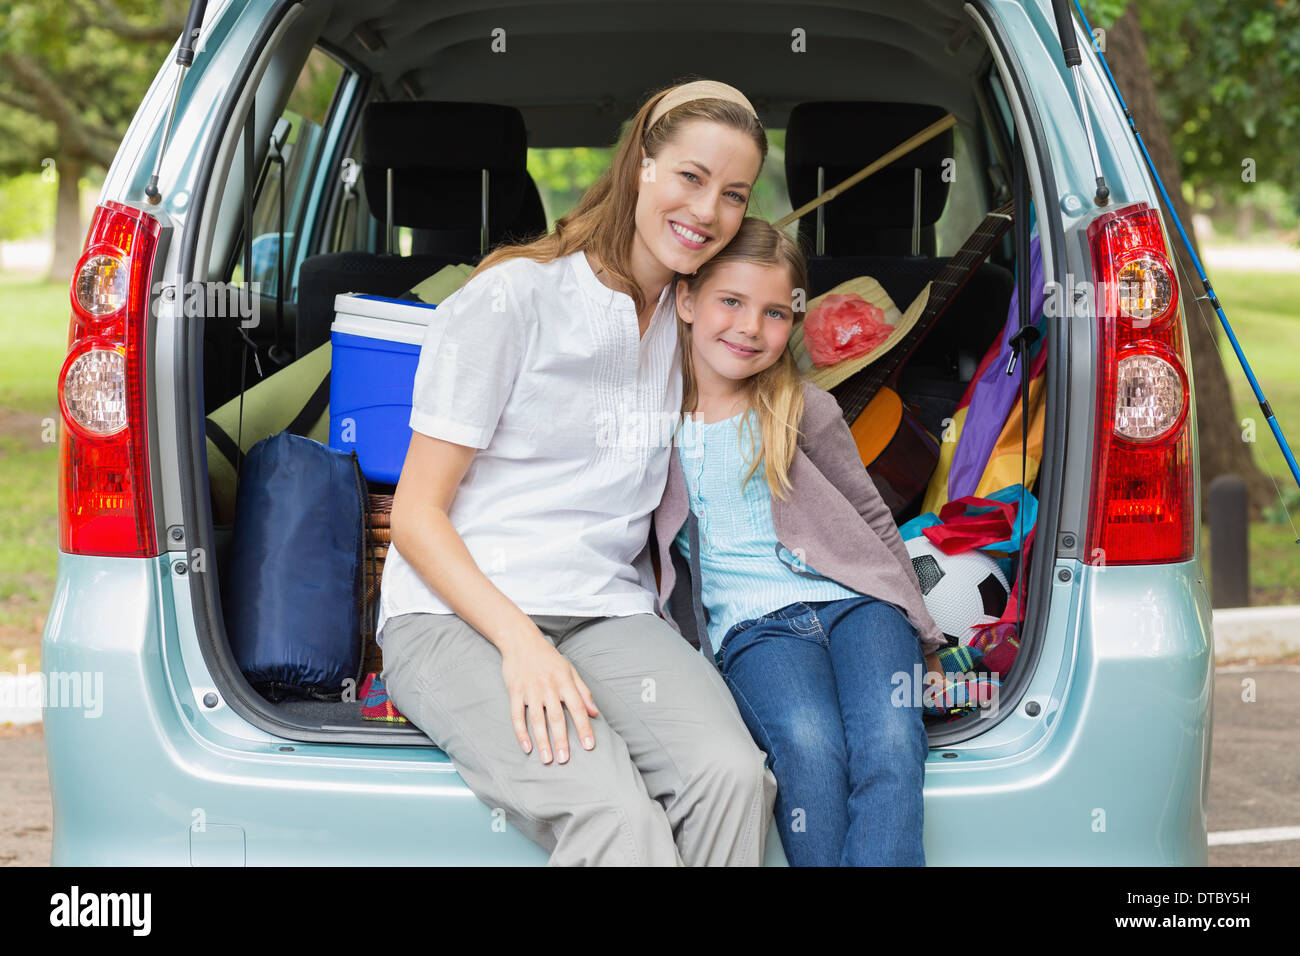 Smiling mother and daughter sitting in car trunk - Stock Image